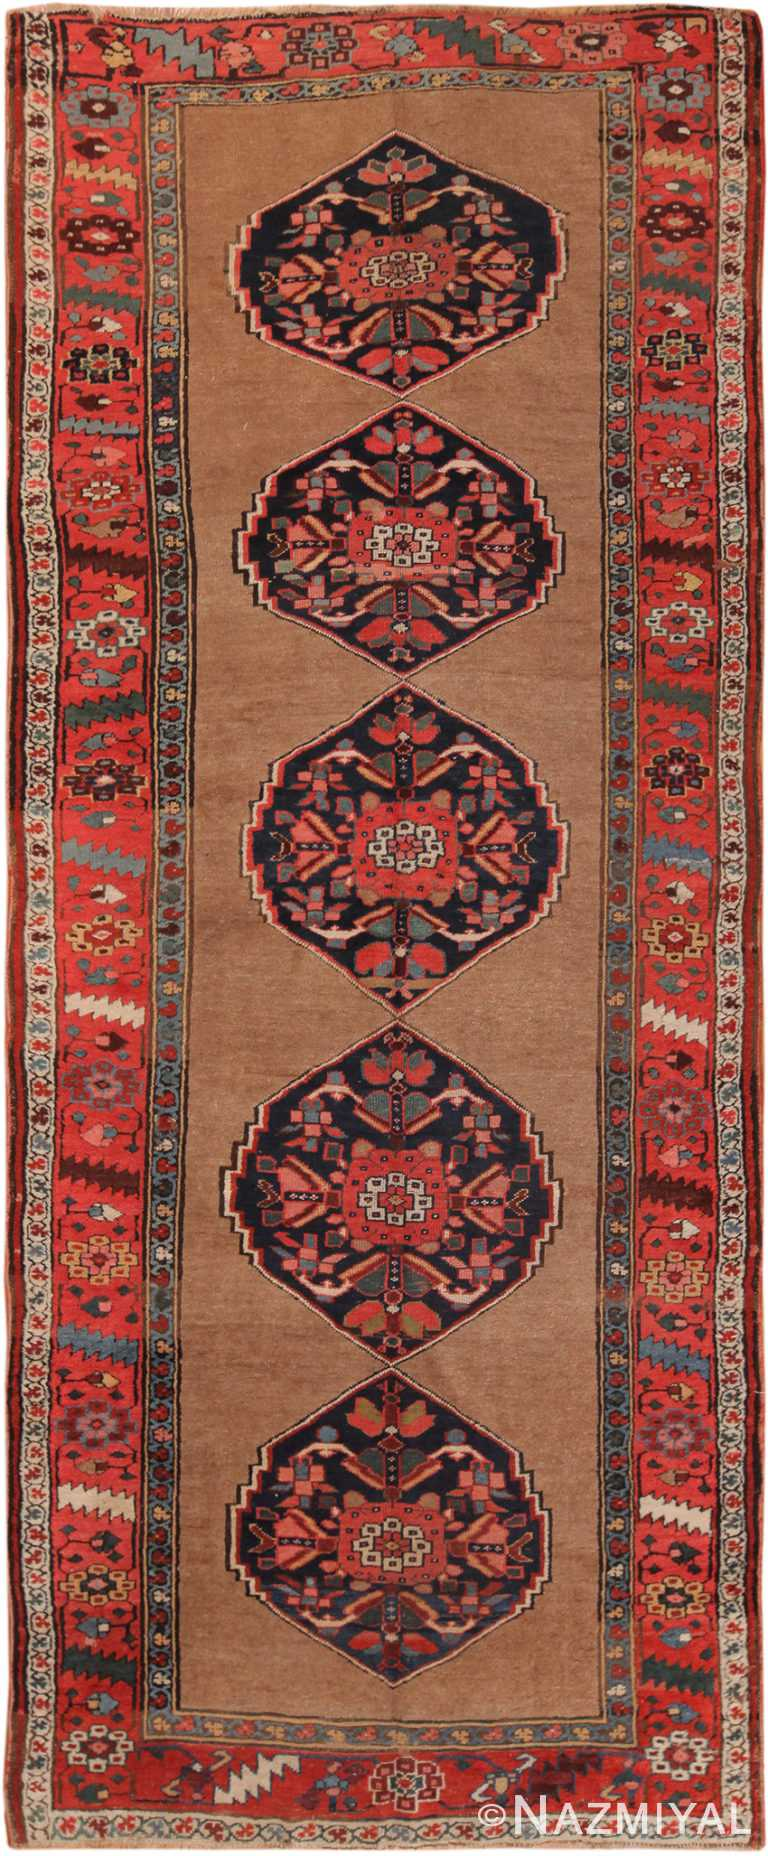 Antique Persian Kurdish Bidjar Runner Rug 70325 by Nazmiyal NYC